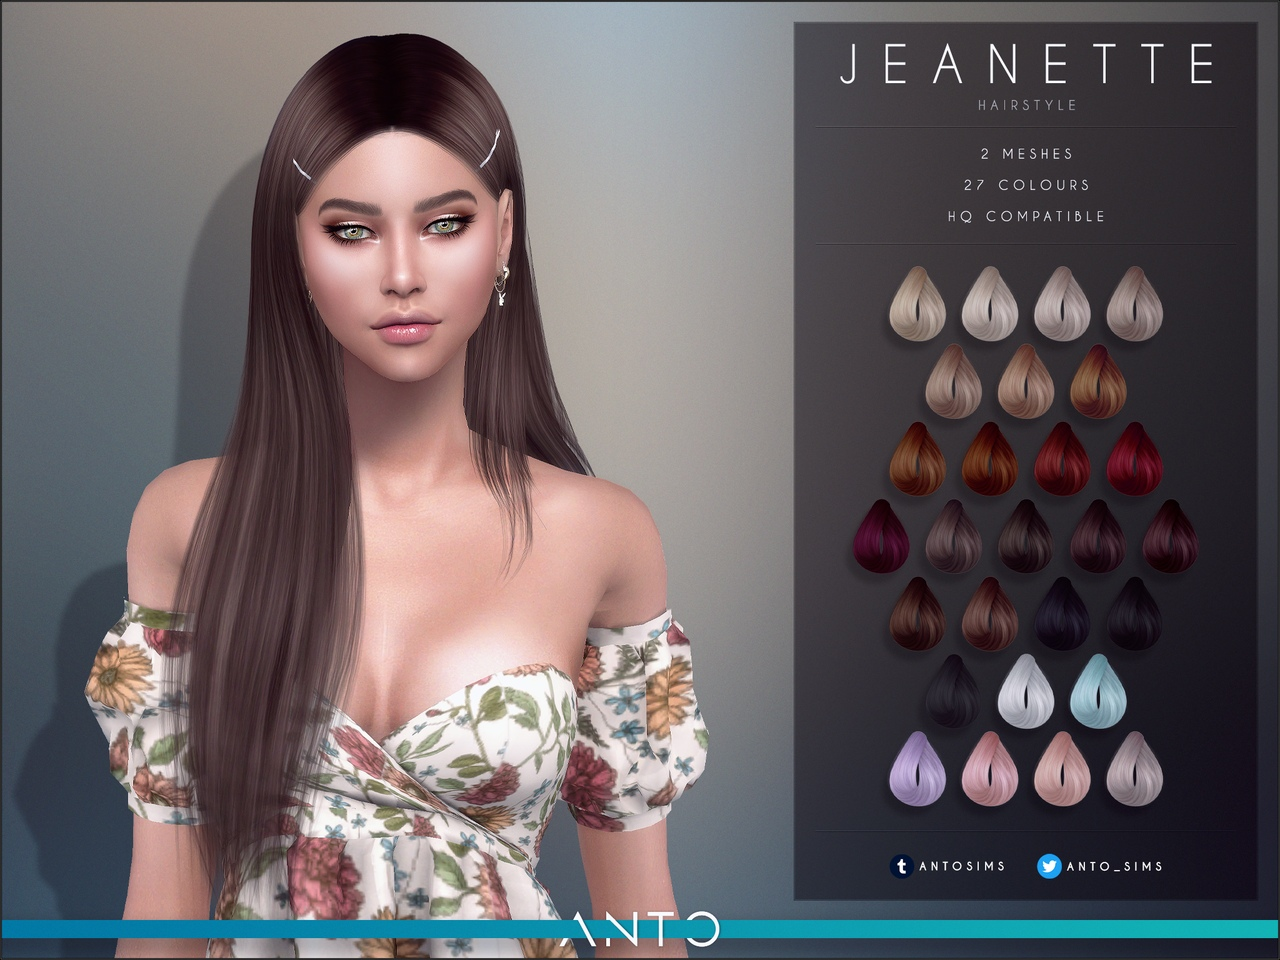 Jeanette Hairstyle by Anto